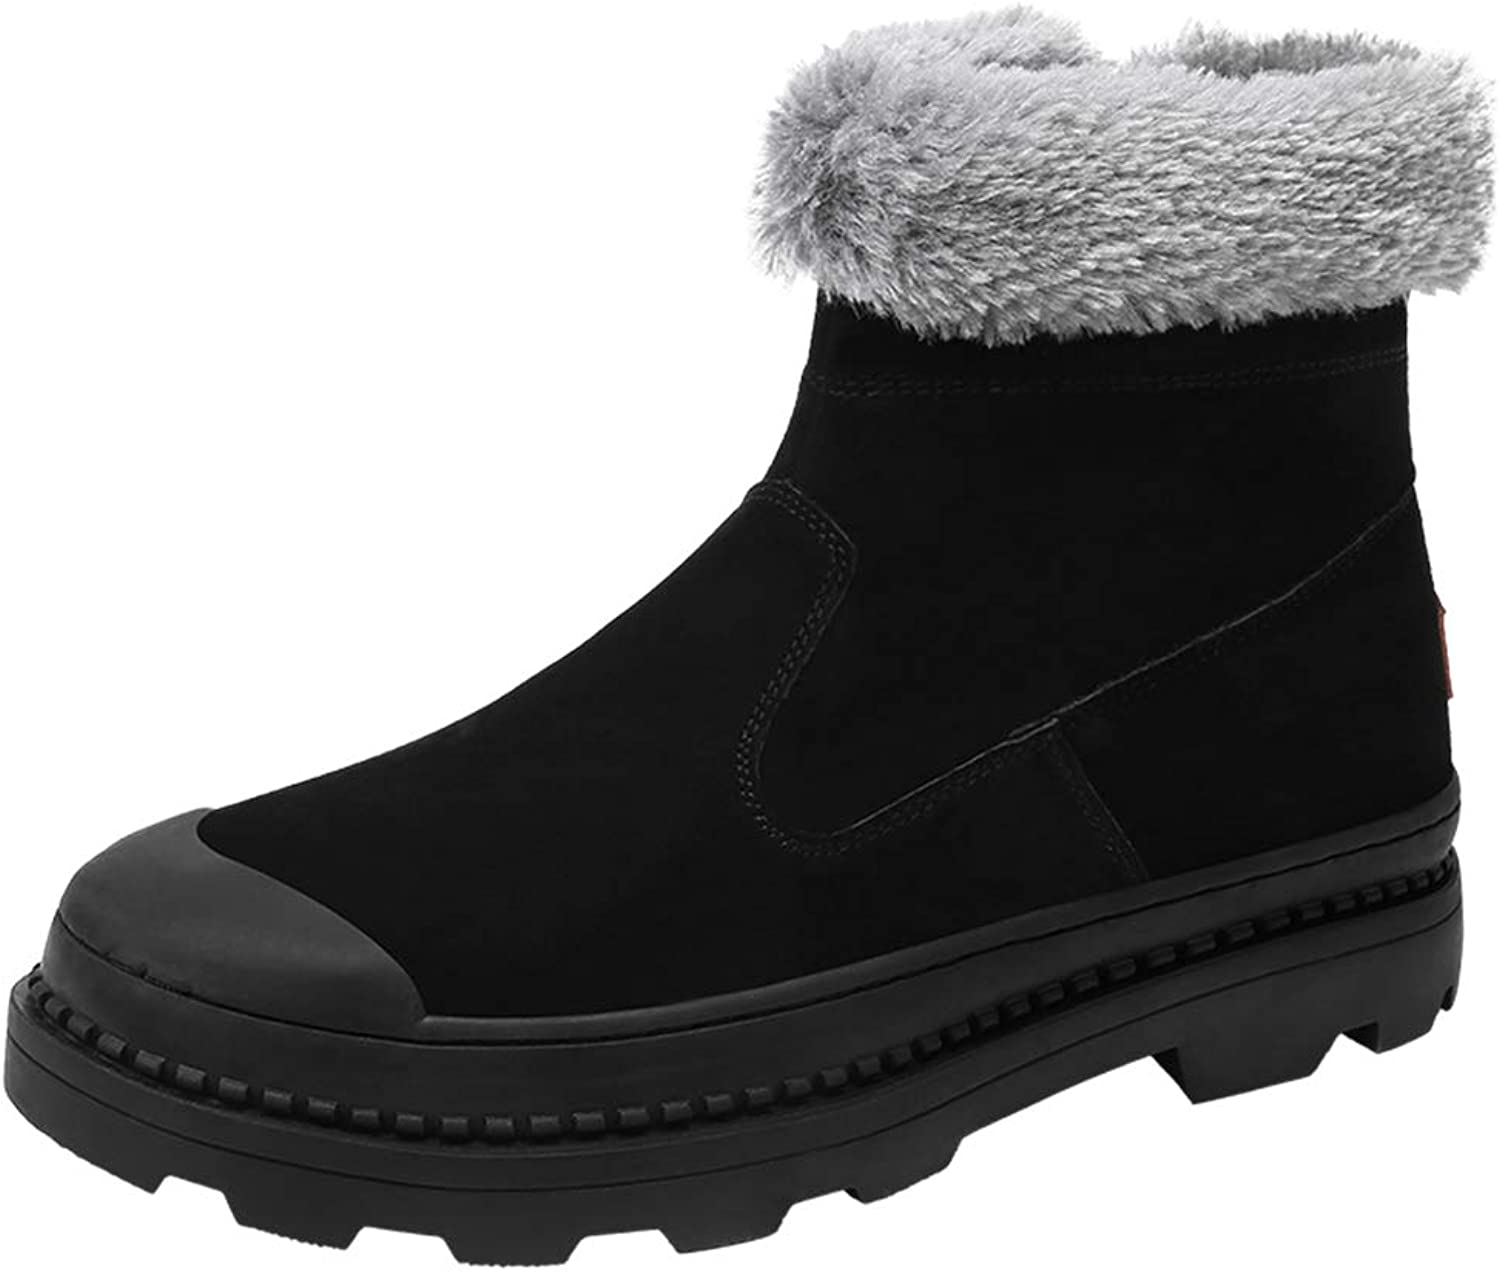 2018 New Mens boots, Men's Fashionable Casual Snow Boots Character Zipper Outsole Winter Faux Fleece Inside Home shoes (color   Black, Size   8.5 UK)